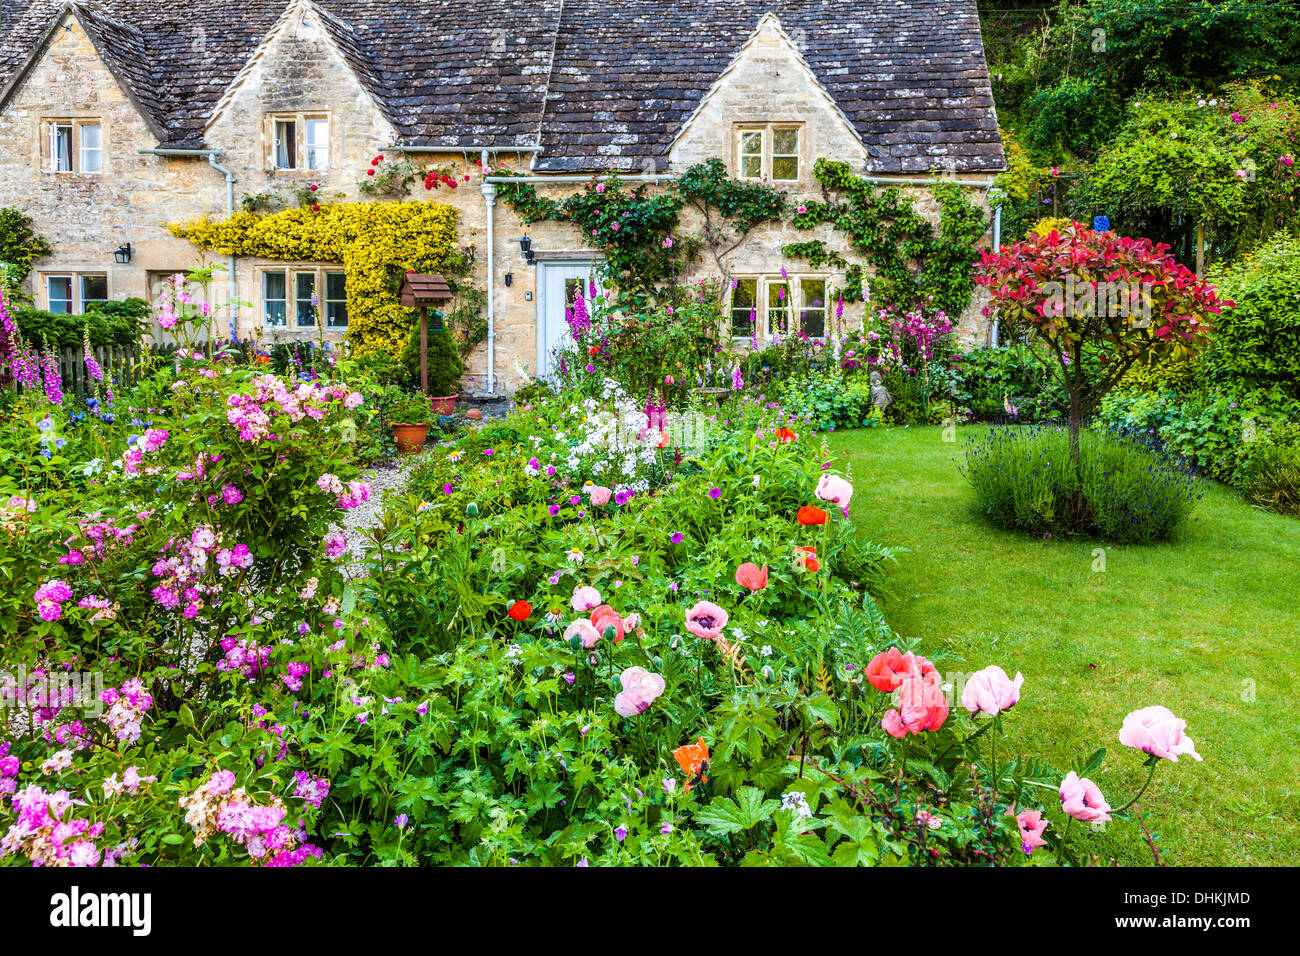 A pretty English cottage garden in the Cotswold village of Bibury in summer. - Stock Image